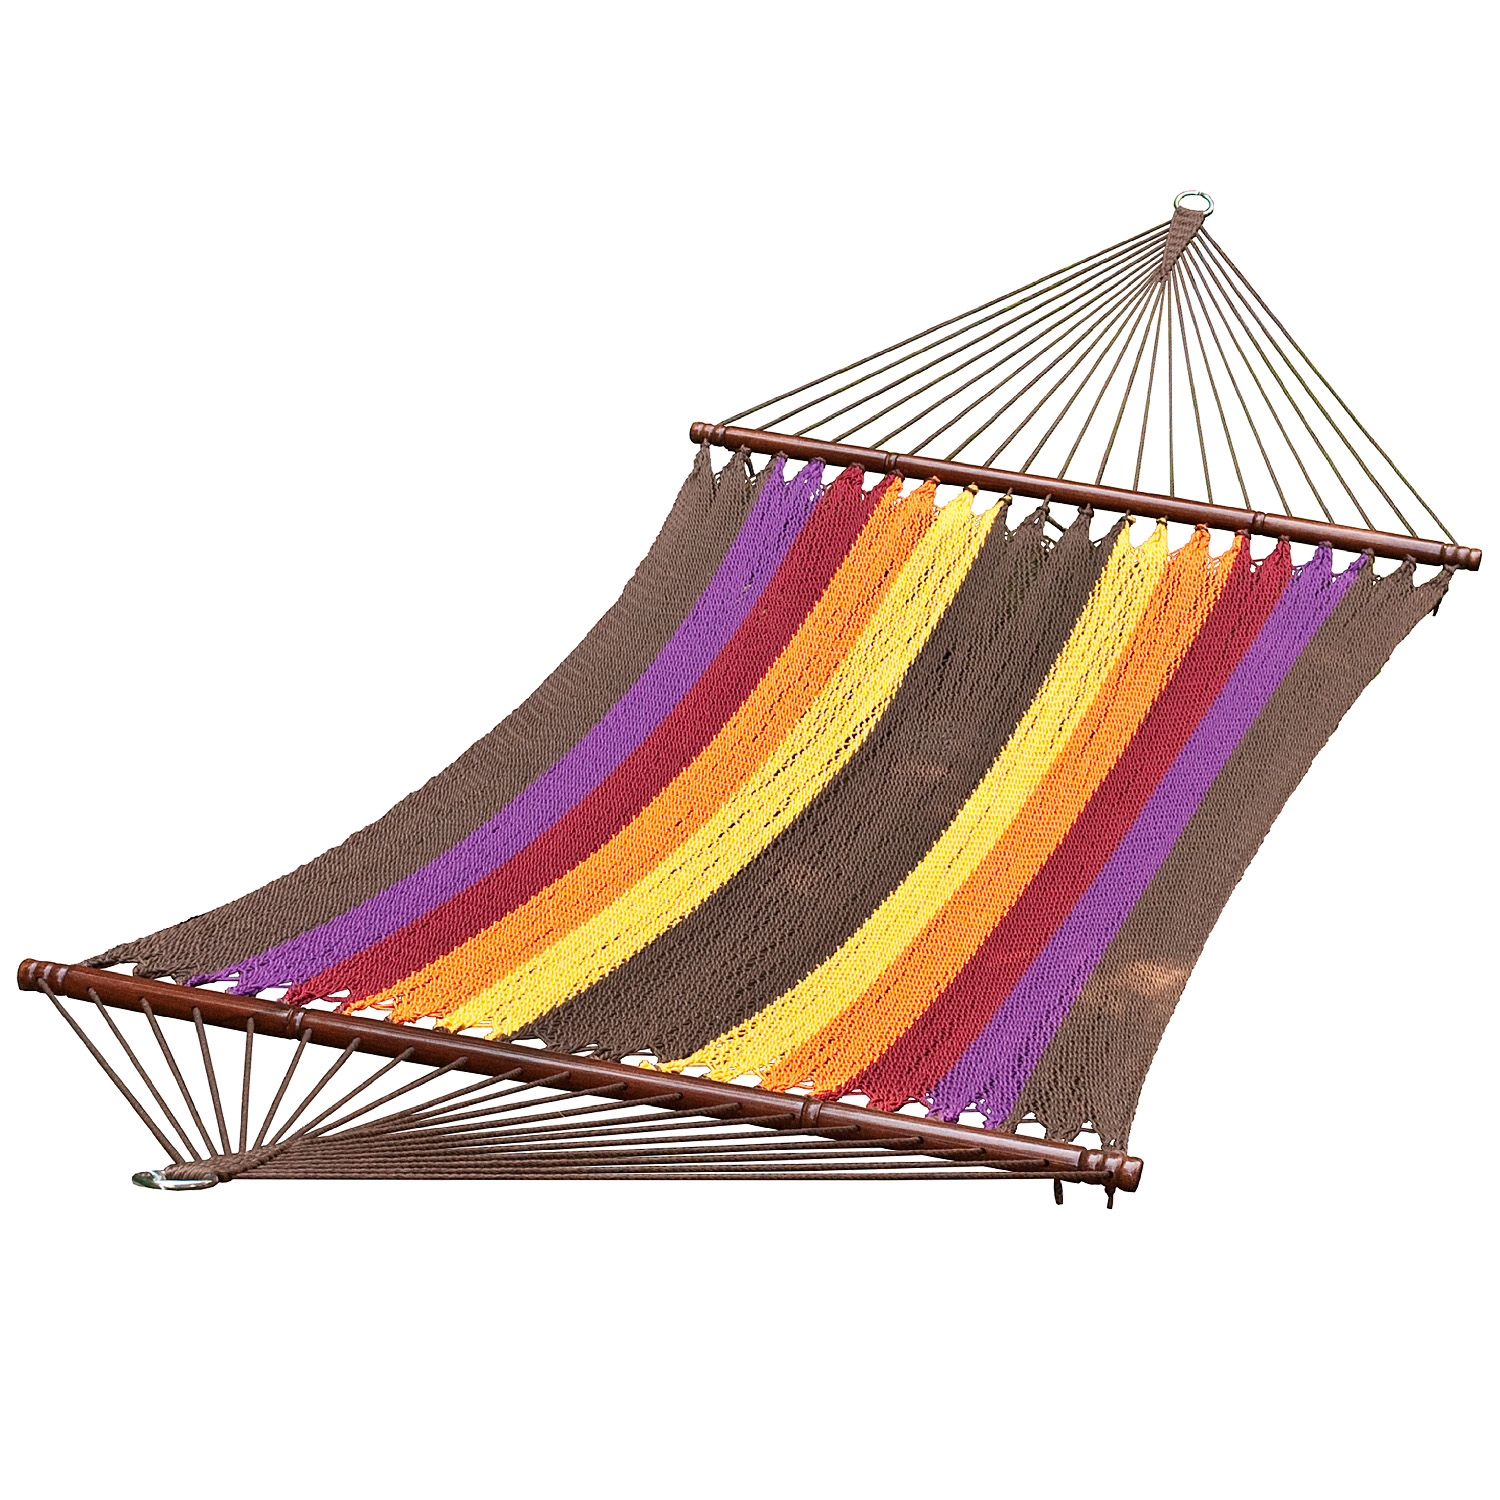 13 ft. 2-Point Tight Weave Soft Polyester Caribbean Rope Hammock, Multi Color